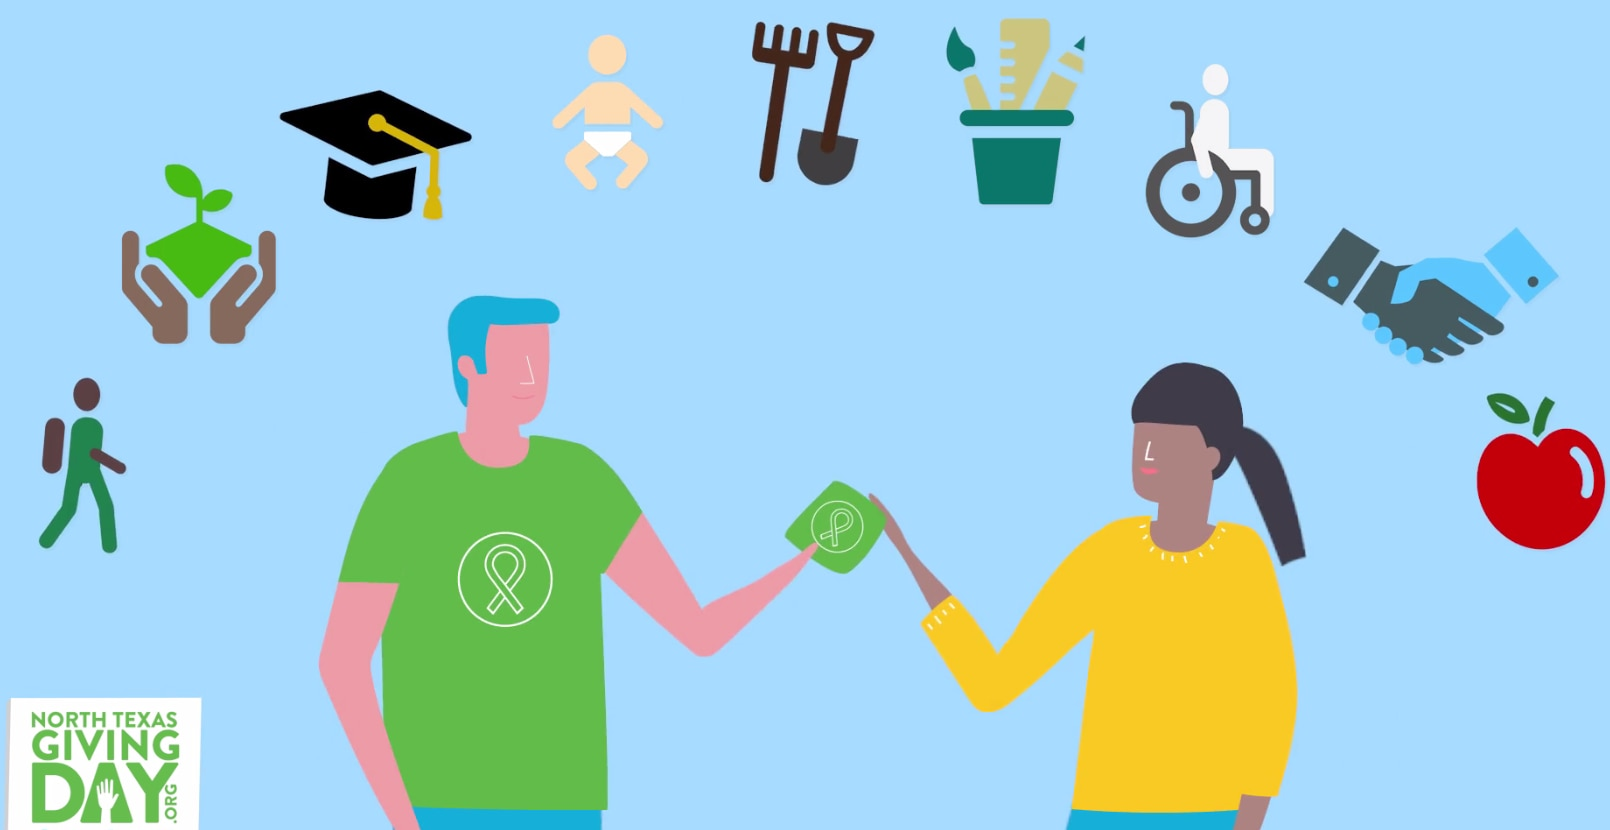 Screenshot from the promotional video for North Texas Giving Day 2017.